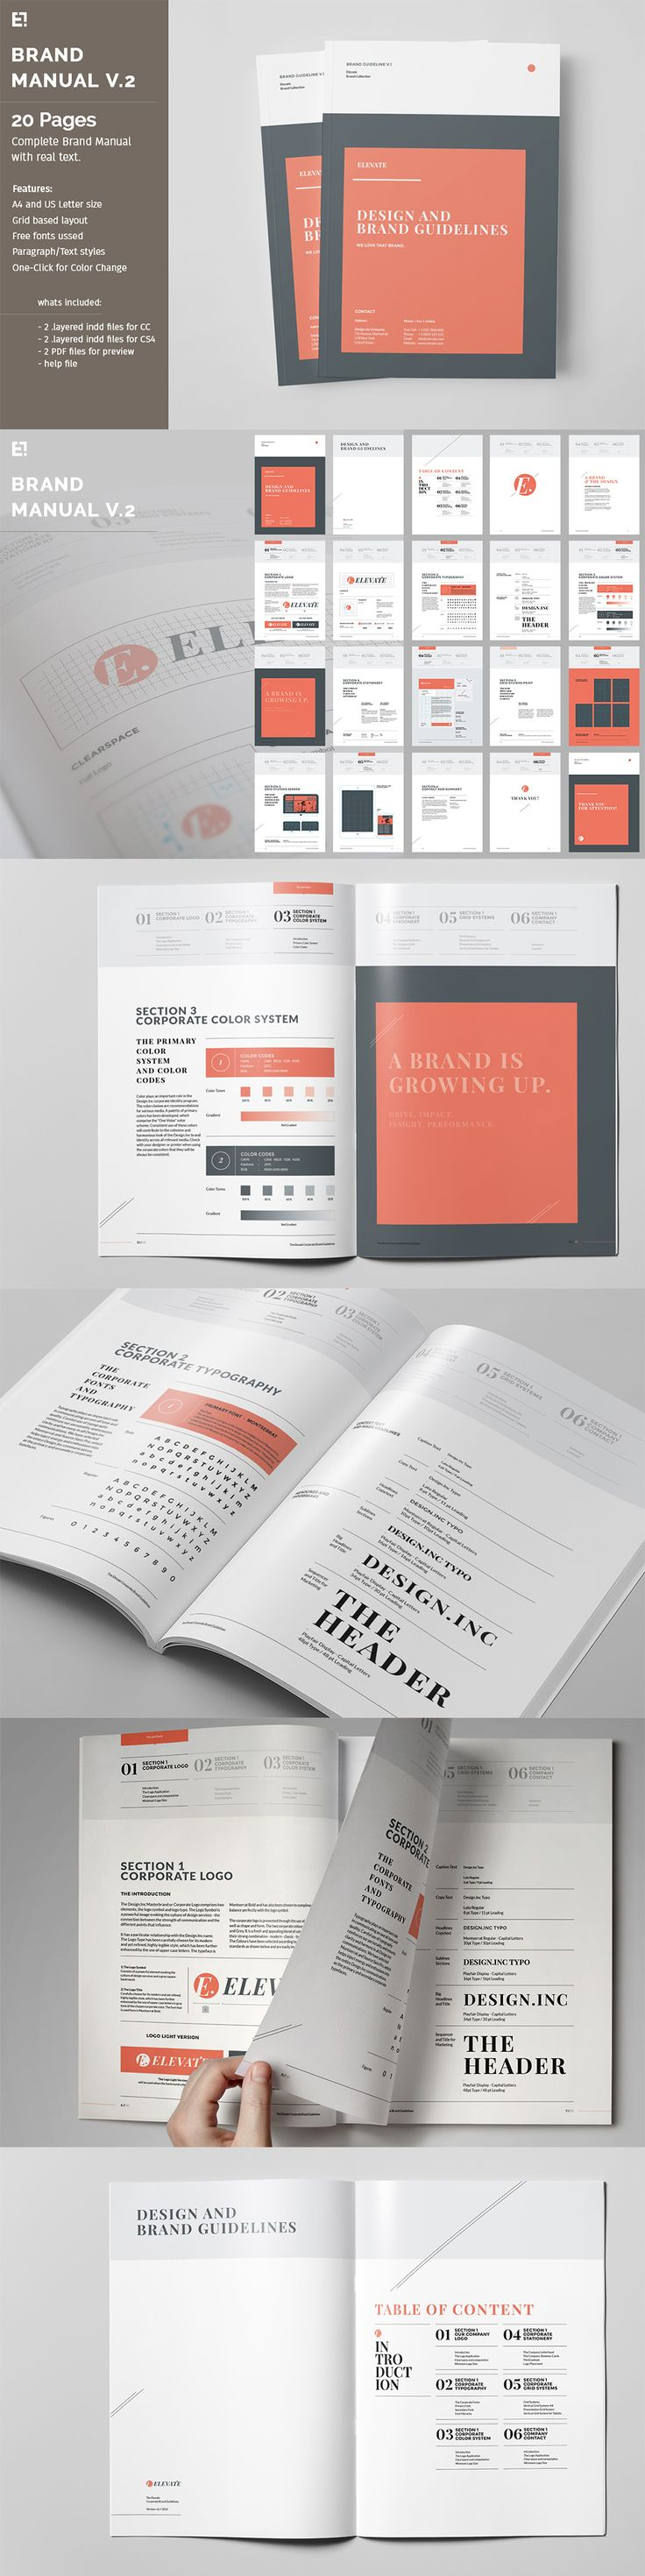 54 best Layout templates images on Pinterest   Brochure layout ...